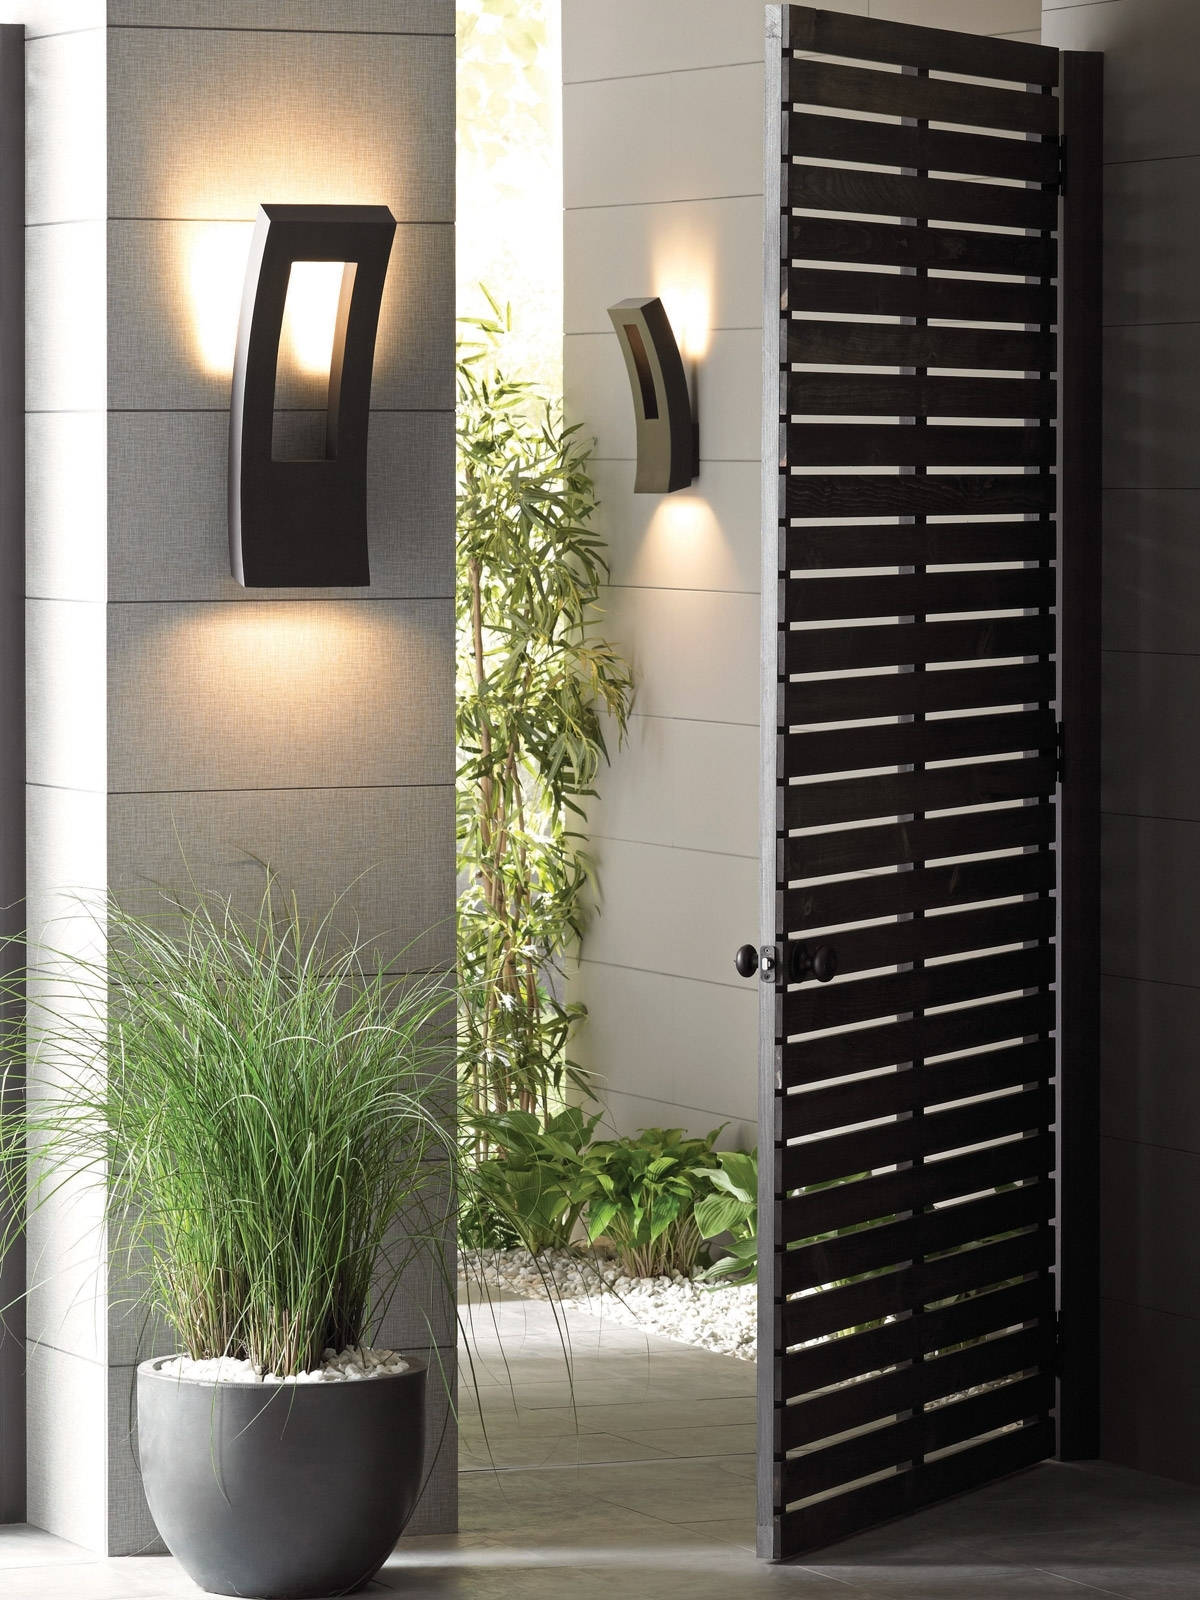 Lighting : Contemporary Outdoor Lighting Fixtures On Sale German Regarding Latest Modern And Contemporary Outdoor Lighting Sconces (View 4 of 20)